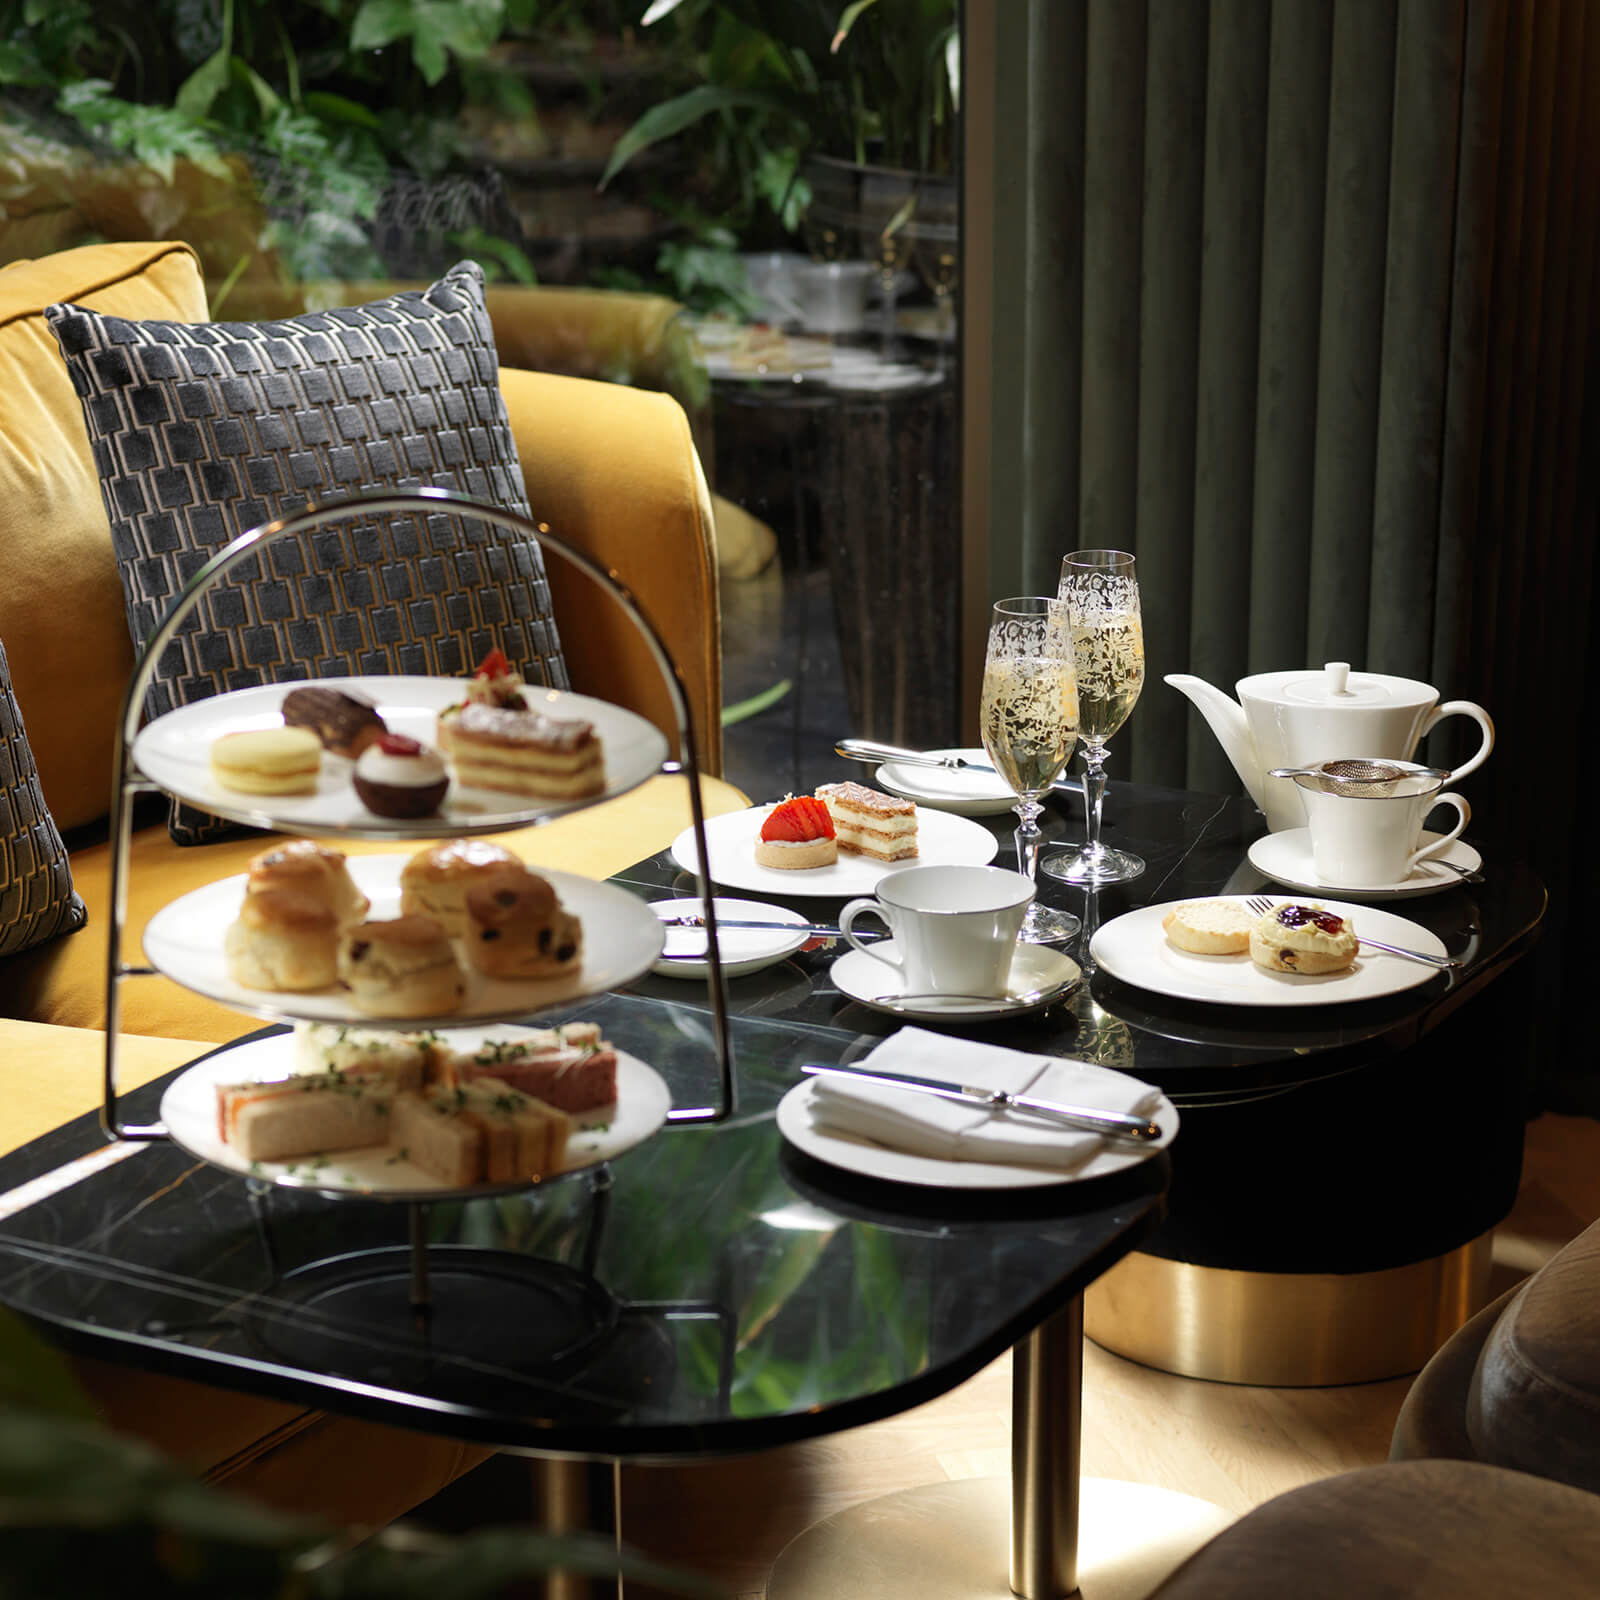 30% Off Luxury Afternoon Tea for Two at Galvin at The Athenaeum Hotel